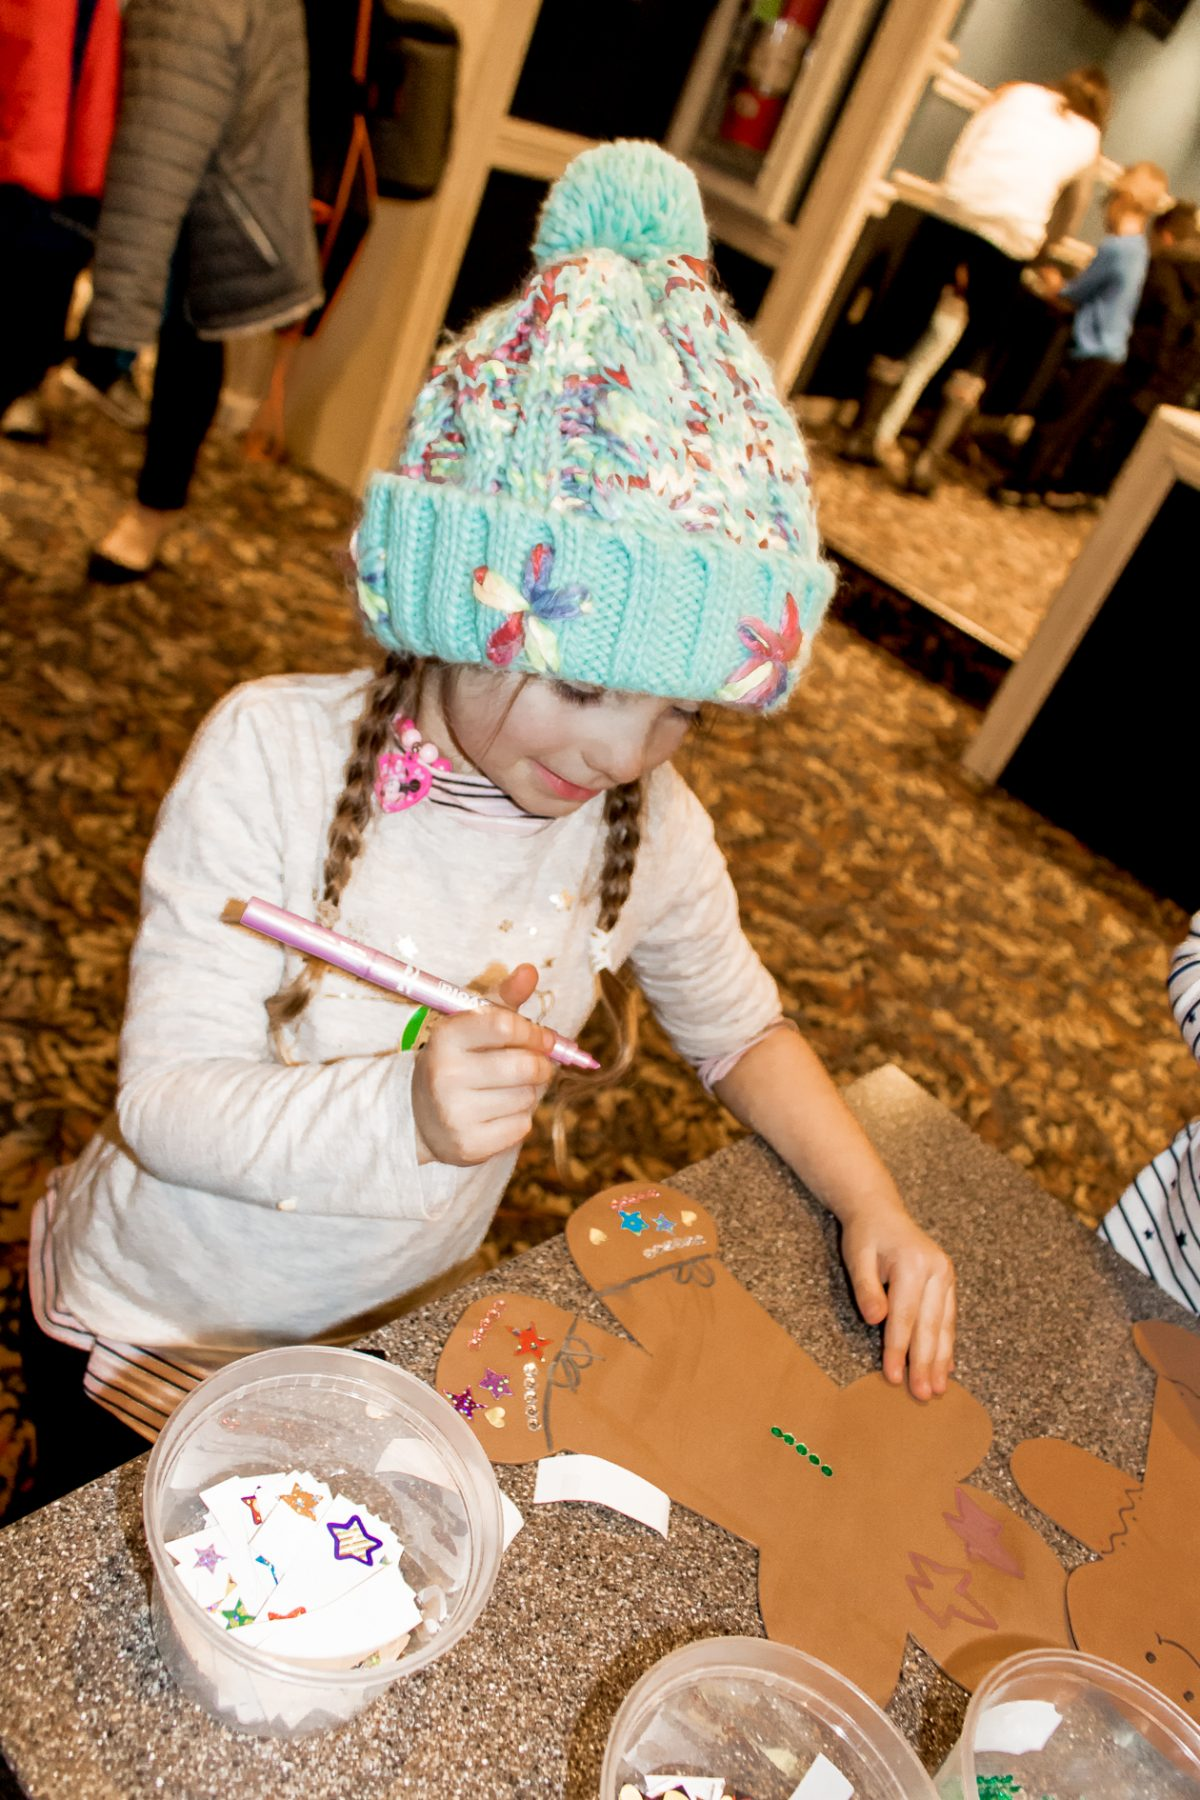 Little girl wearing tan sweater and blue winter hat smiling while making a gingerbread art projects at Woodloch Pines Resort Winter Festival